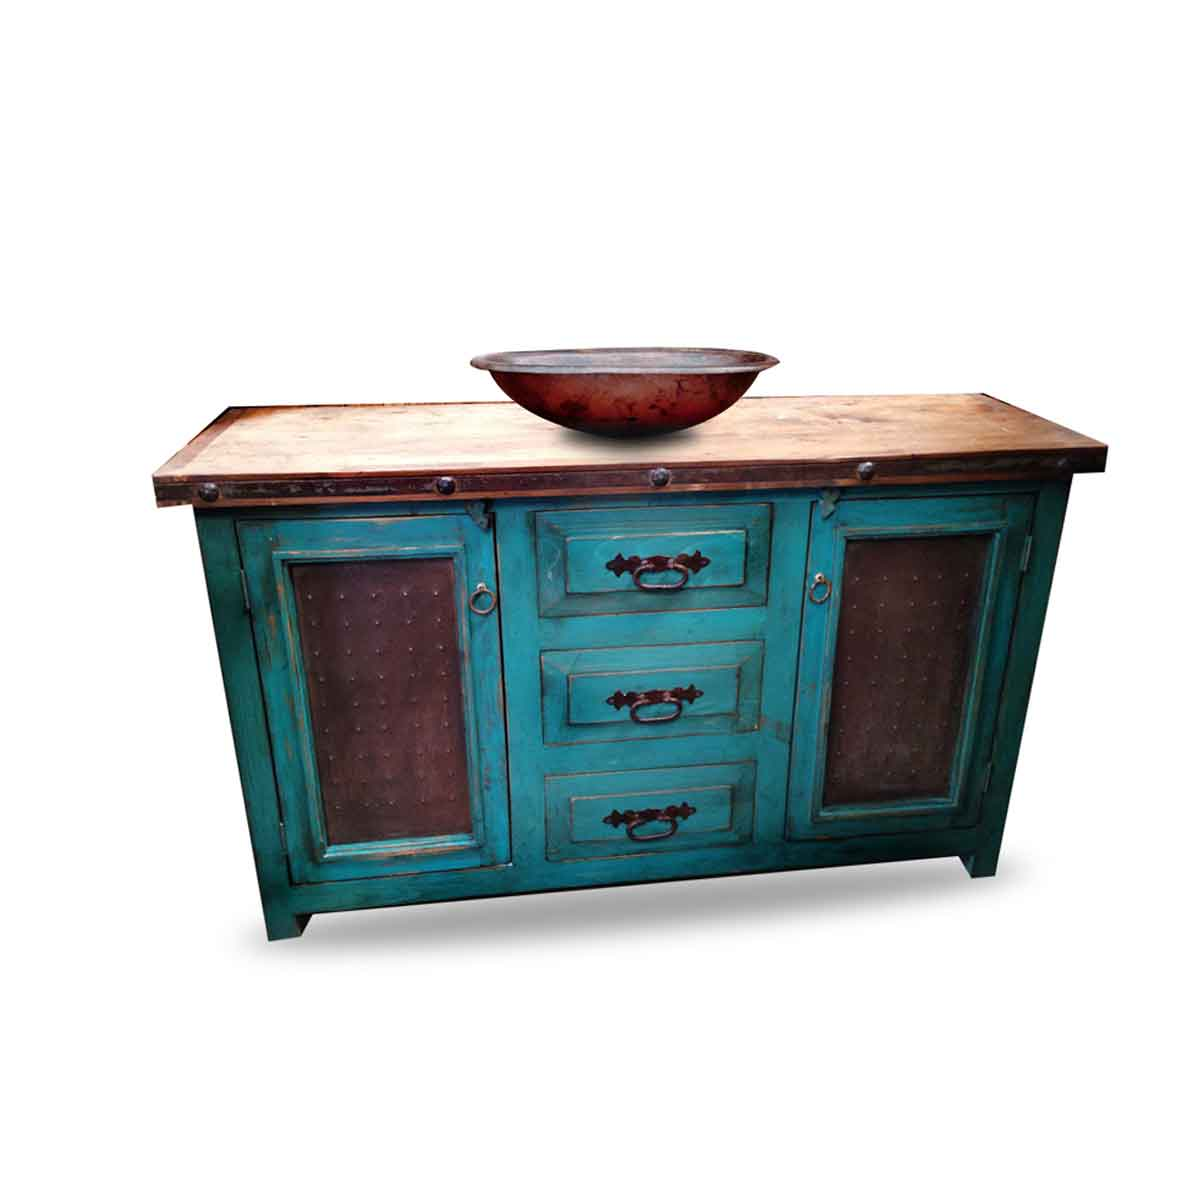 order beautiful turquoise bathroom vanity made from 100